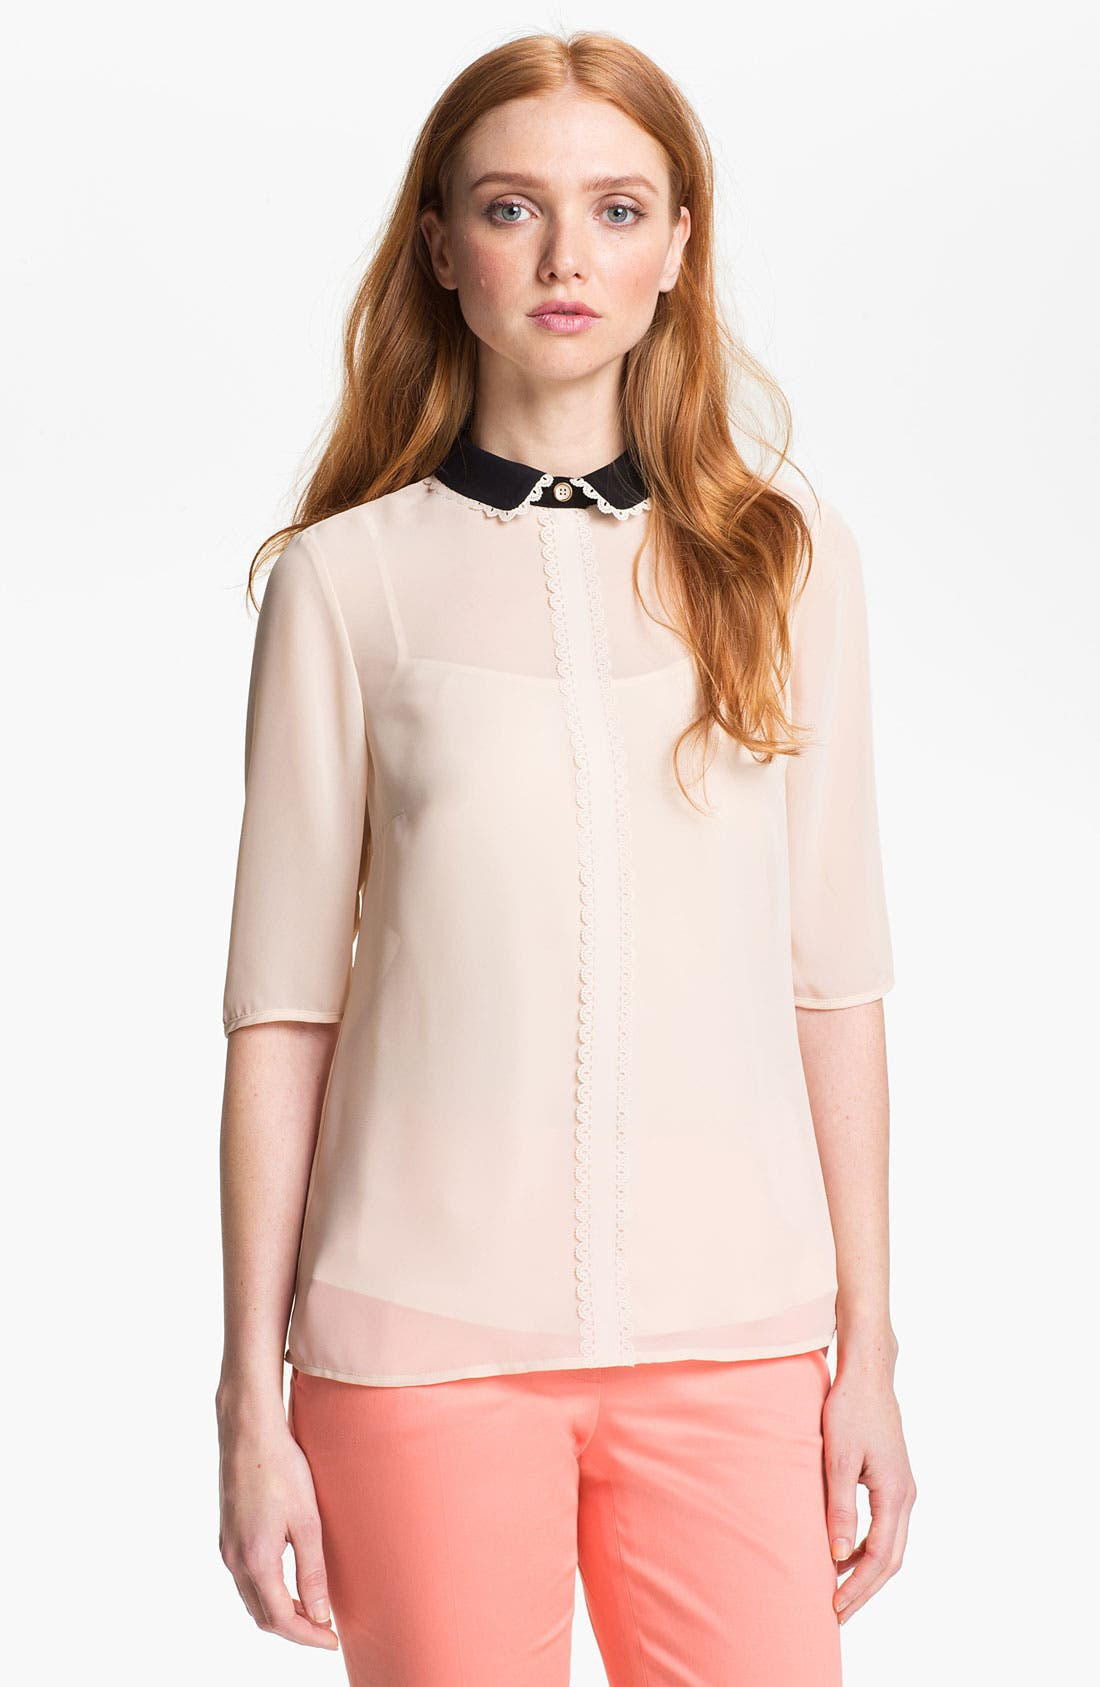 Alternate Image 1 Selected - Ted Baker London Laser Cut Detail Shirt (Online Only)